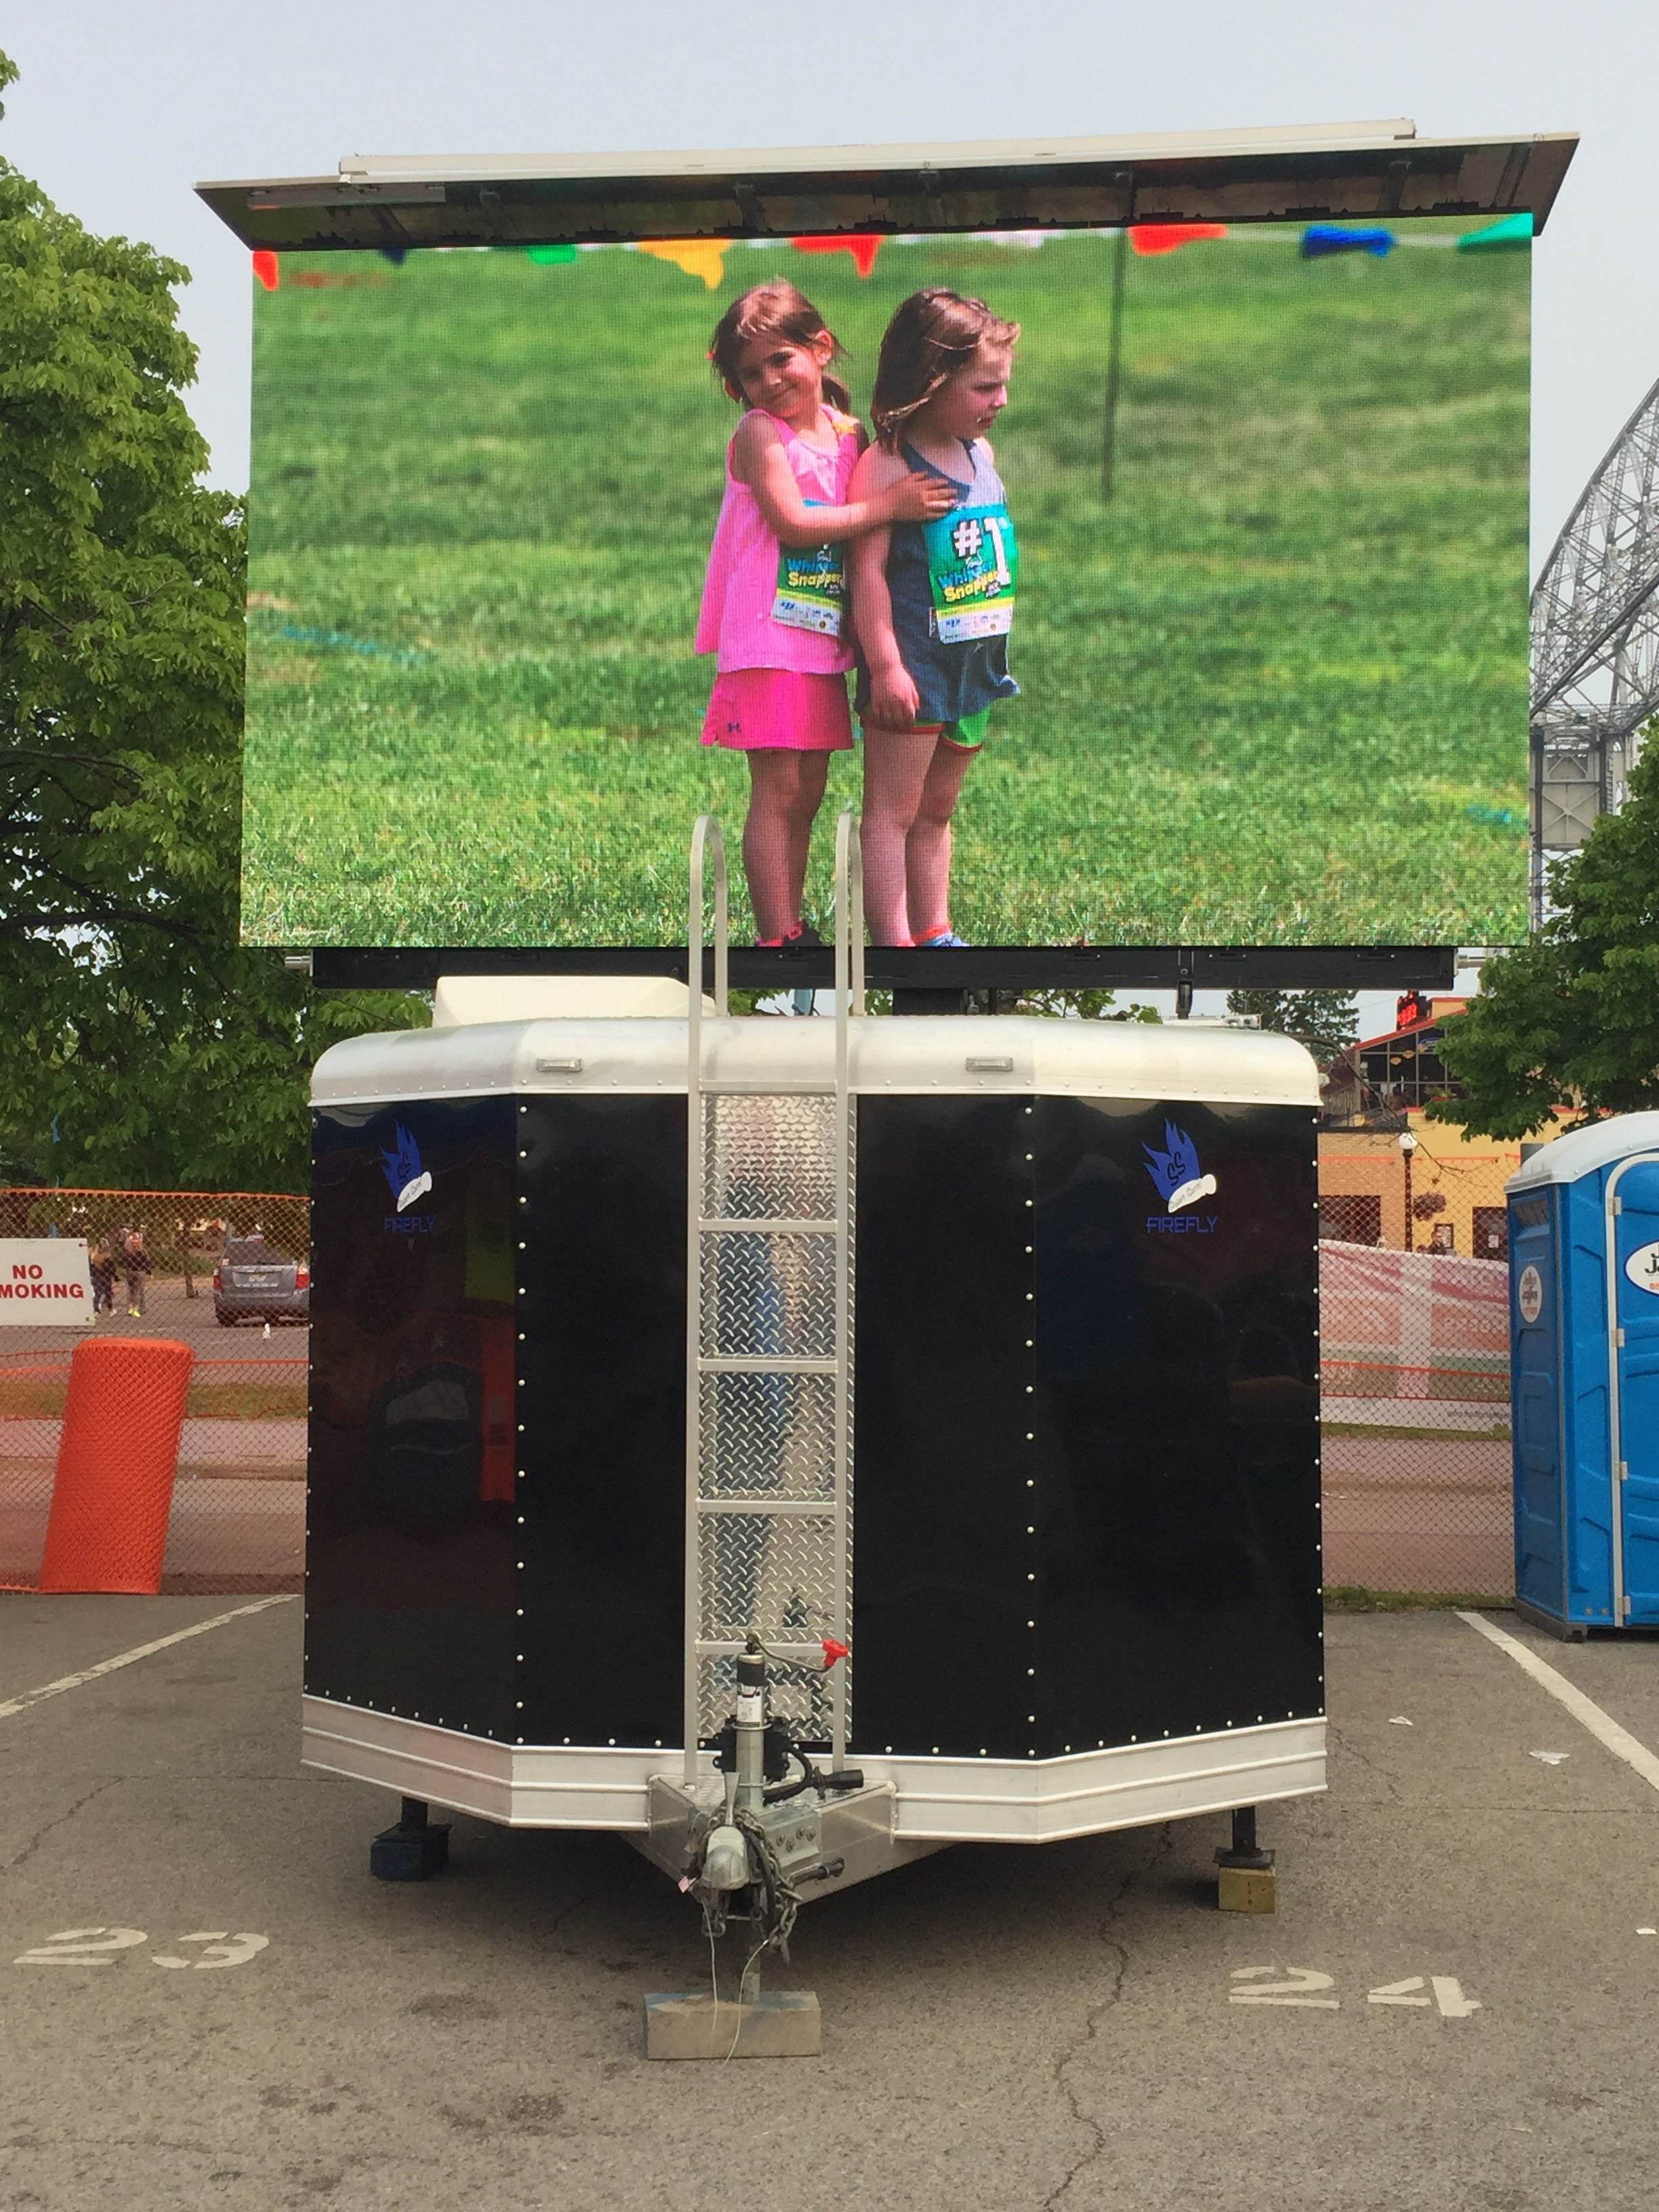 mobile led jumbotron big screen tv outdoor event rental video wall